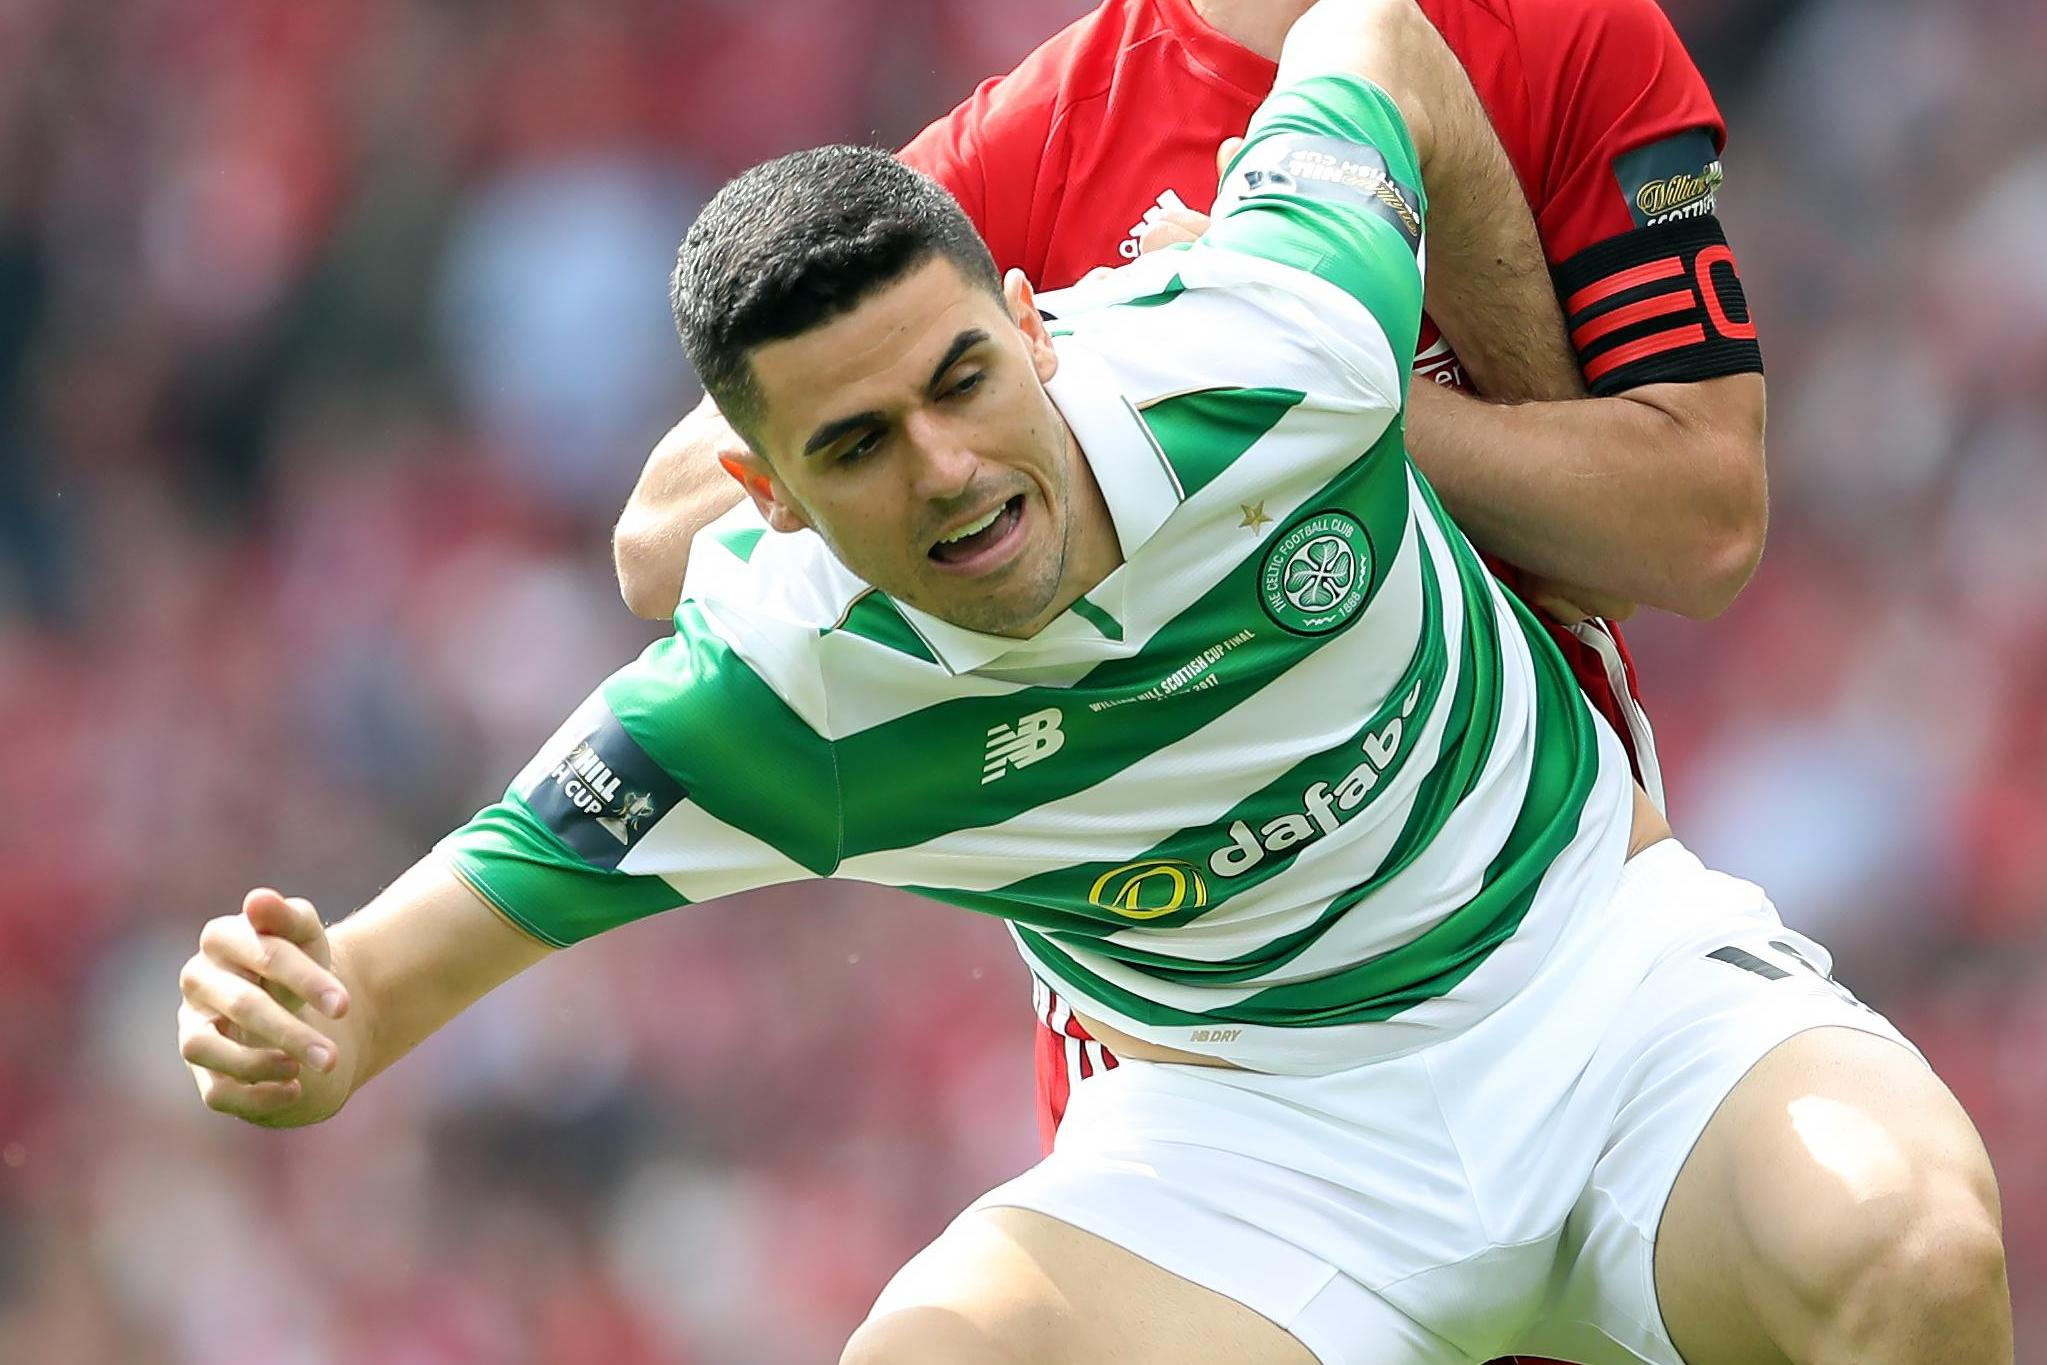 Celtic 2 Aberdeen 1: Tom Rogic scores injury-time winner as Brendan Rodgers' side complete the treble